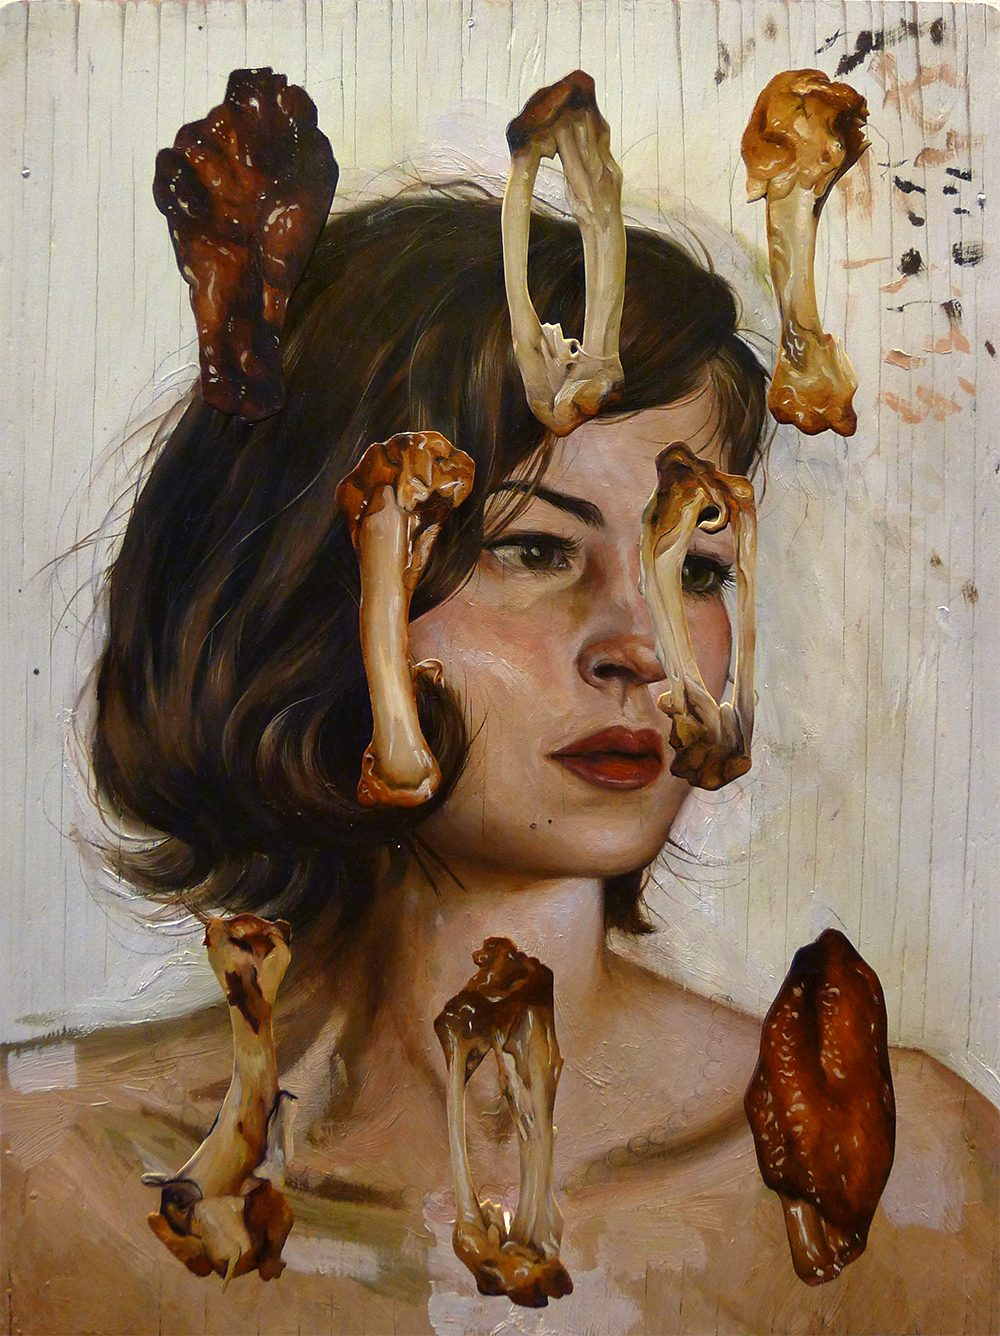 "Chicken Wing Selfie (or, These Wings Were Instrumental in my Break-Up) 2014. Oil on found wood panel, birch plywood, nails, glue, 12.5""x17"". The chicken wings were cut from birch plywood and affixed to the portrait with nails, hovering roughly 1.5"" from the portrait surface."